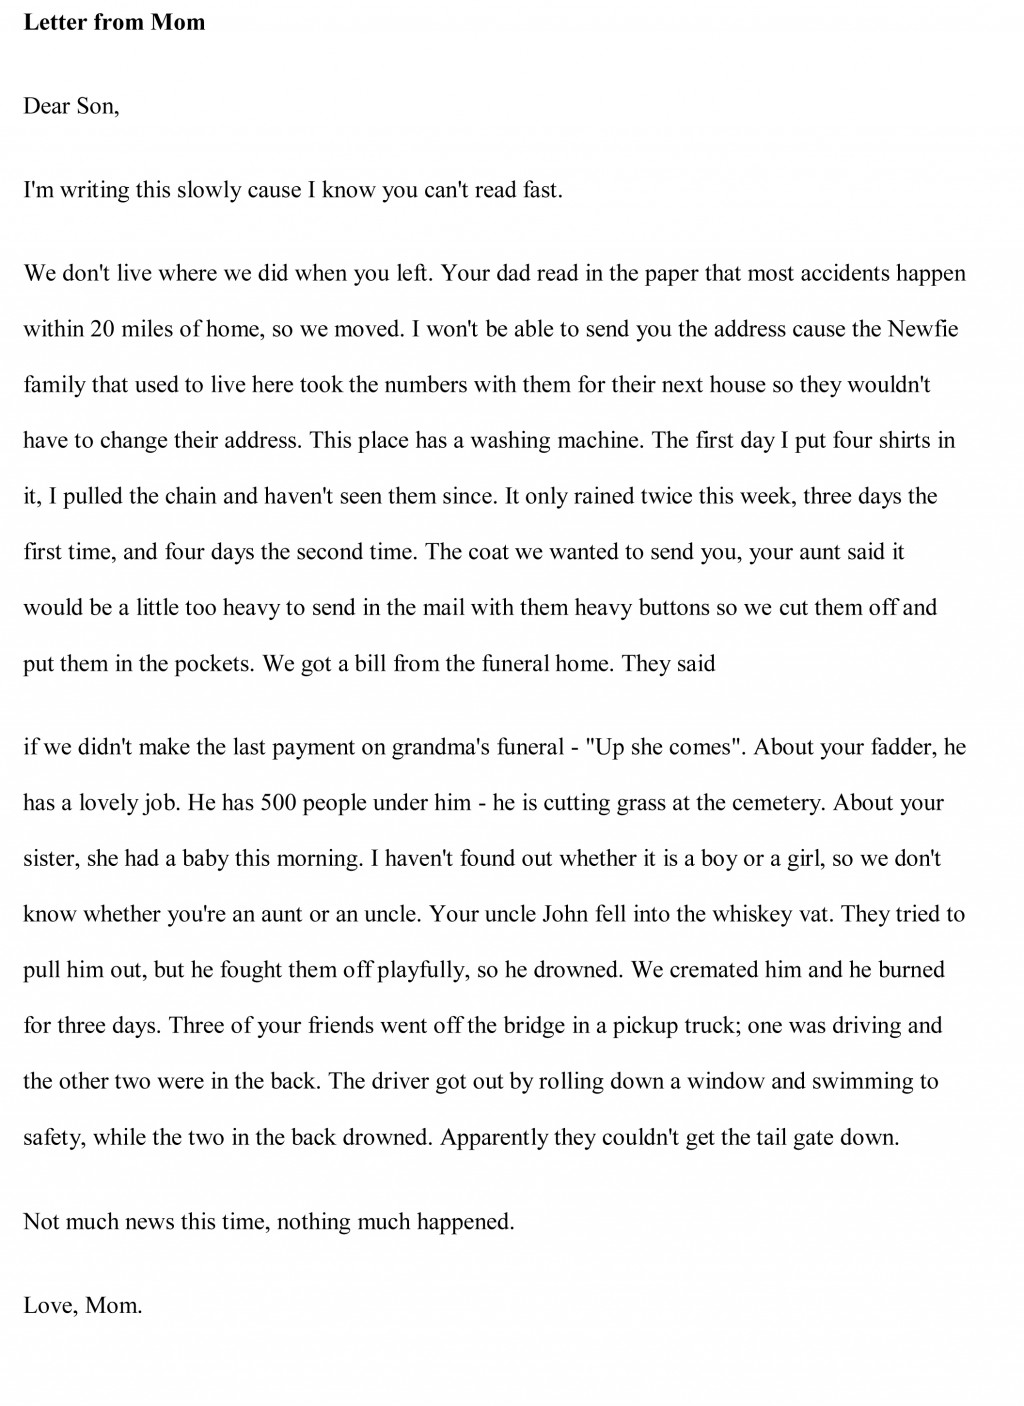 007 Funny Research Paper Topics Essay Free Fearsome Ideas Argumentative Large